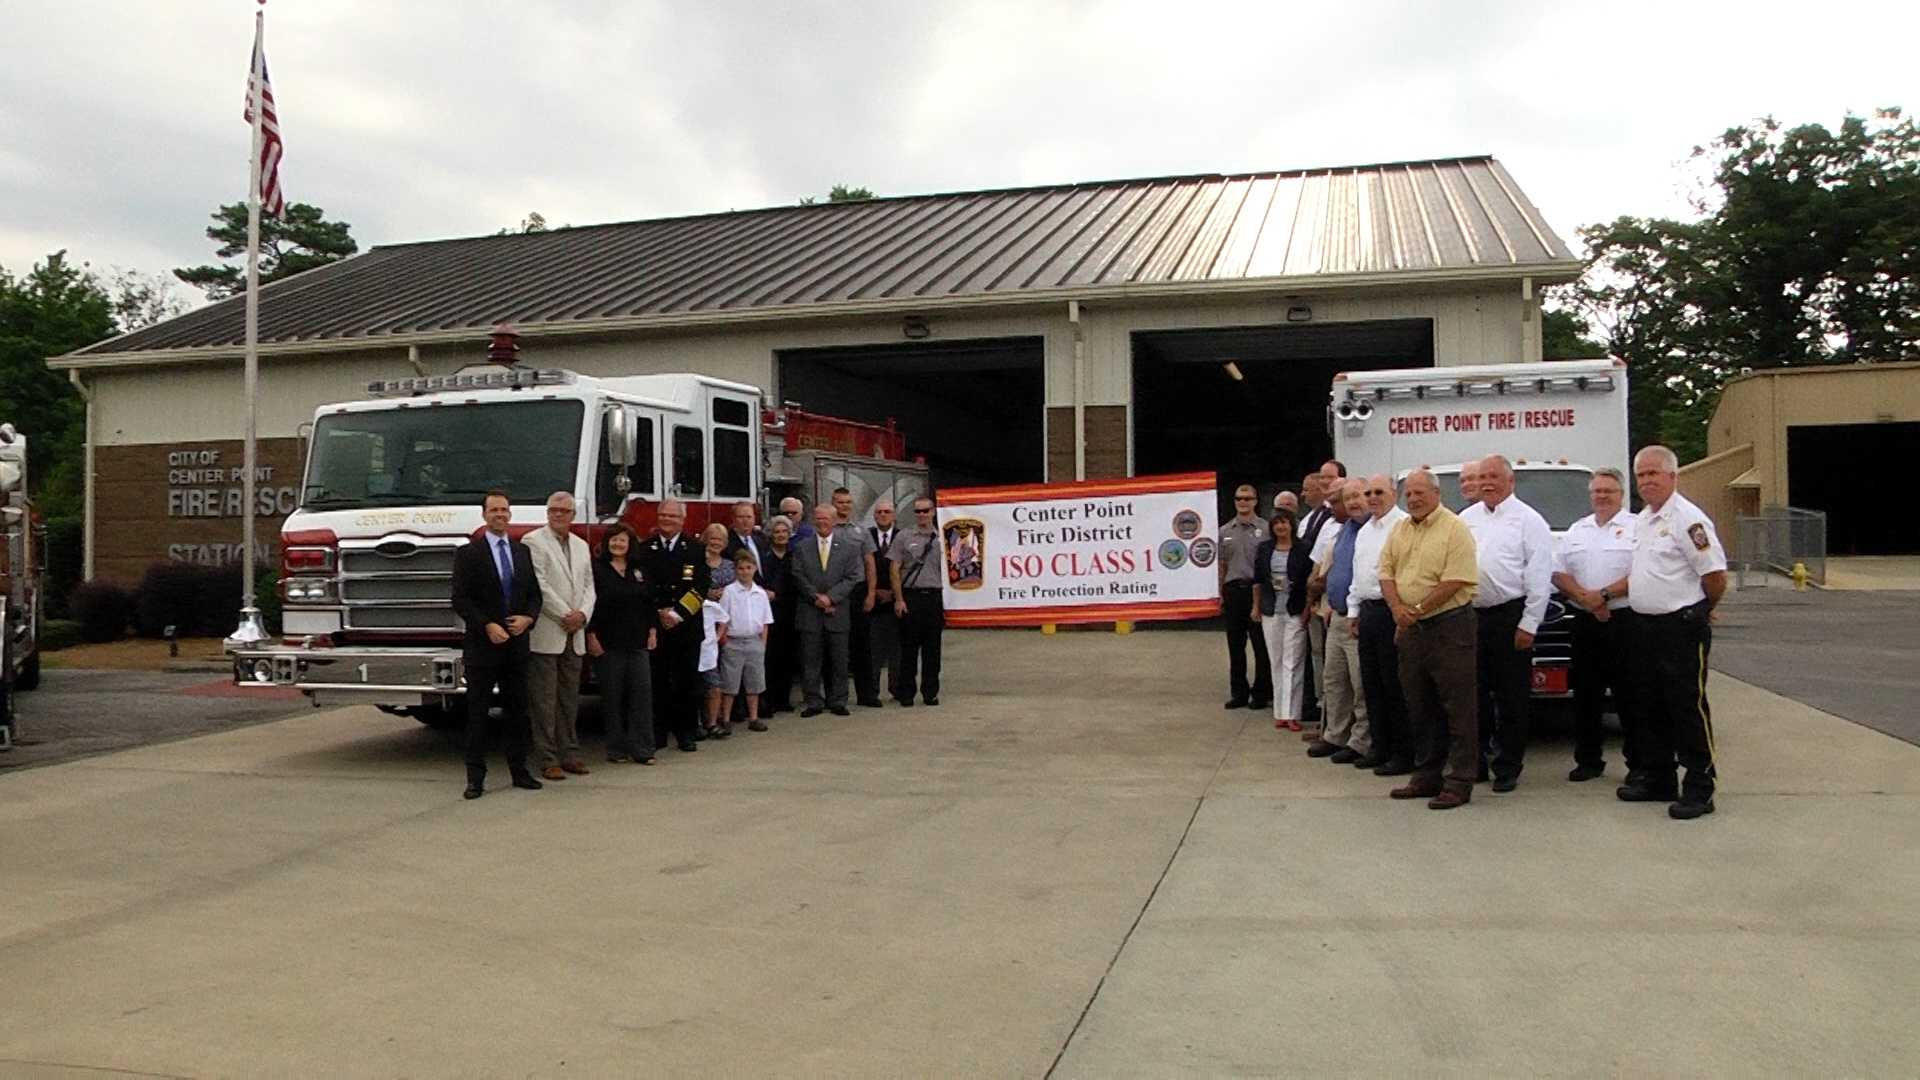 The Center Point Fire District has been recognized as one of the top fire service agencies in Alabama.